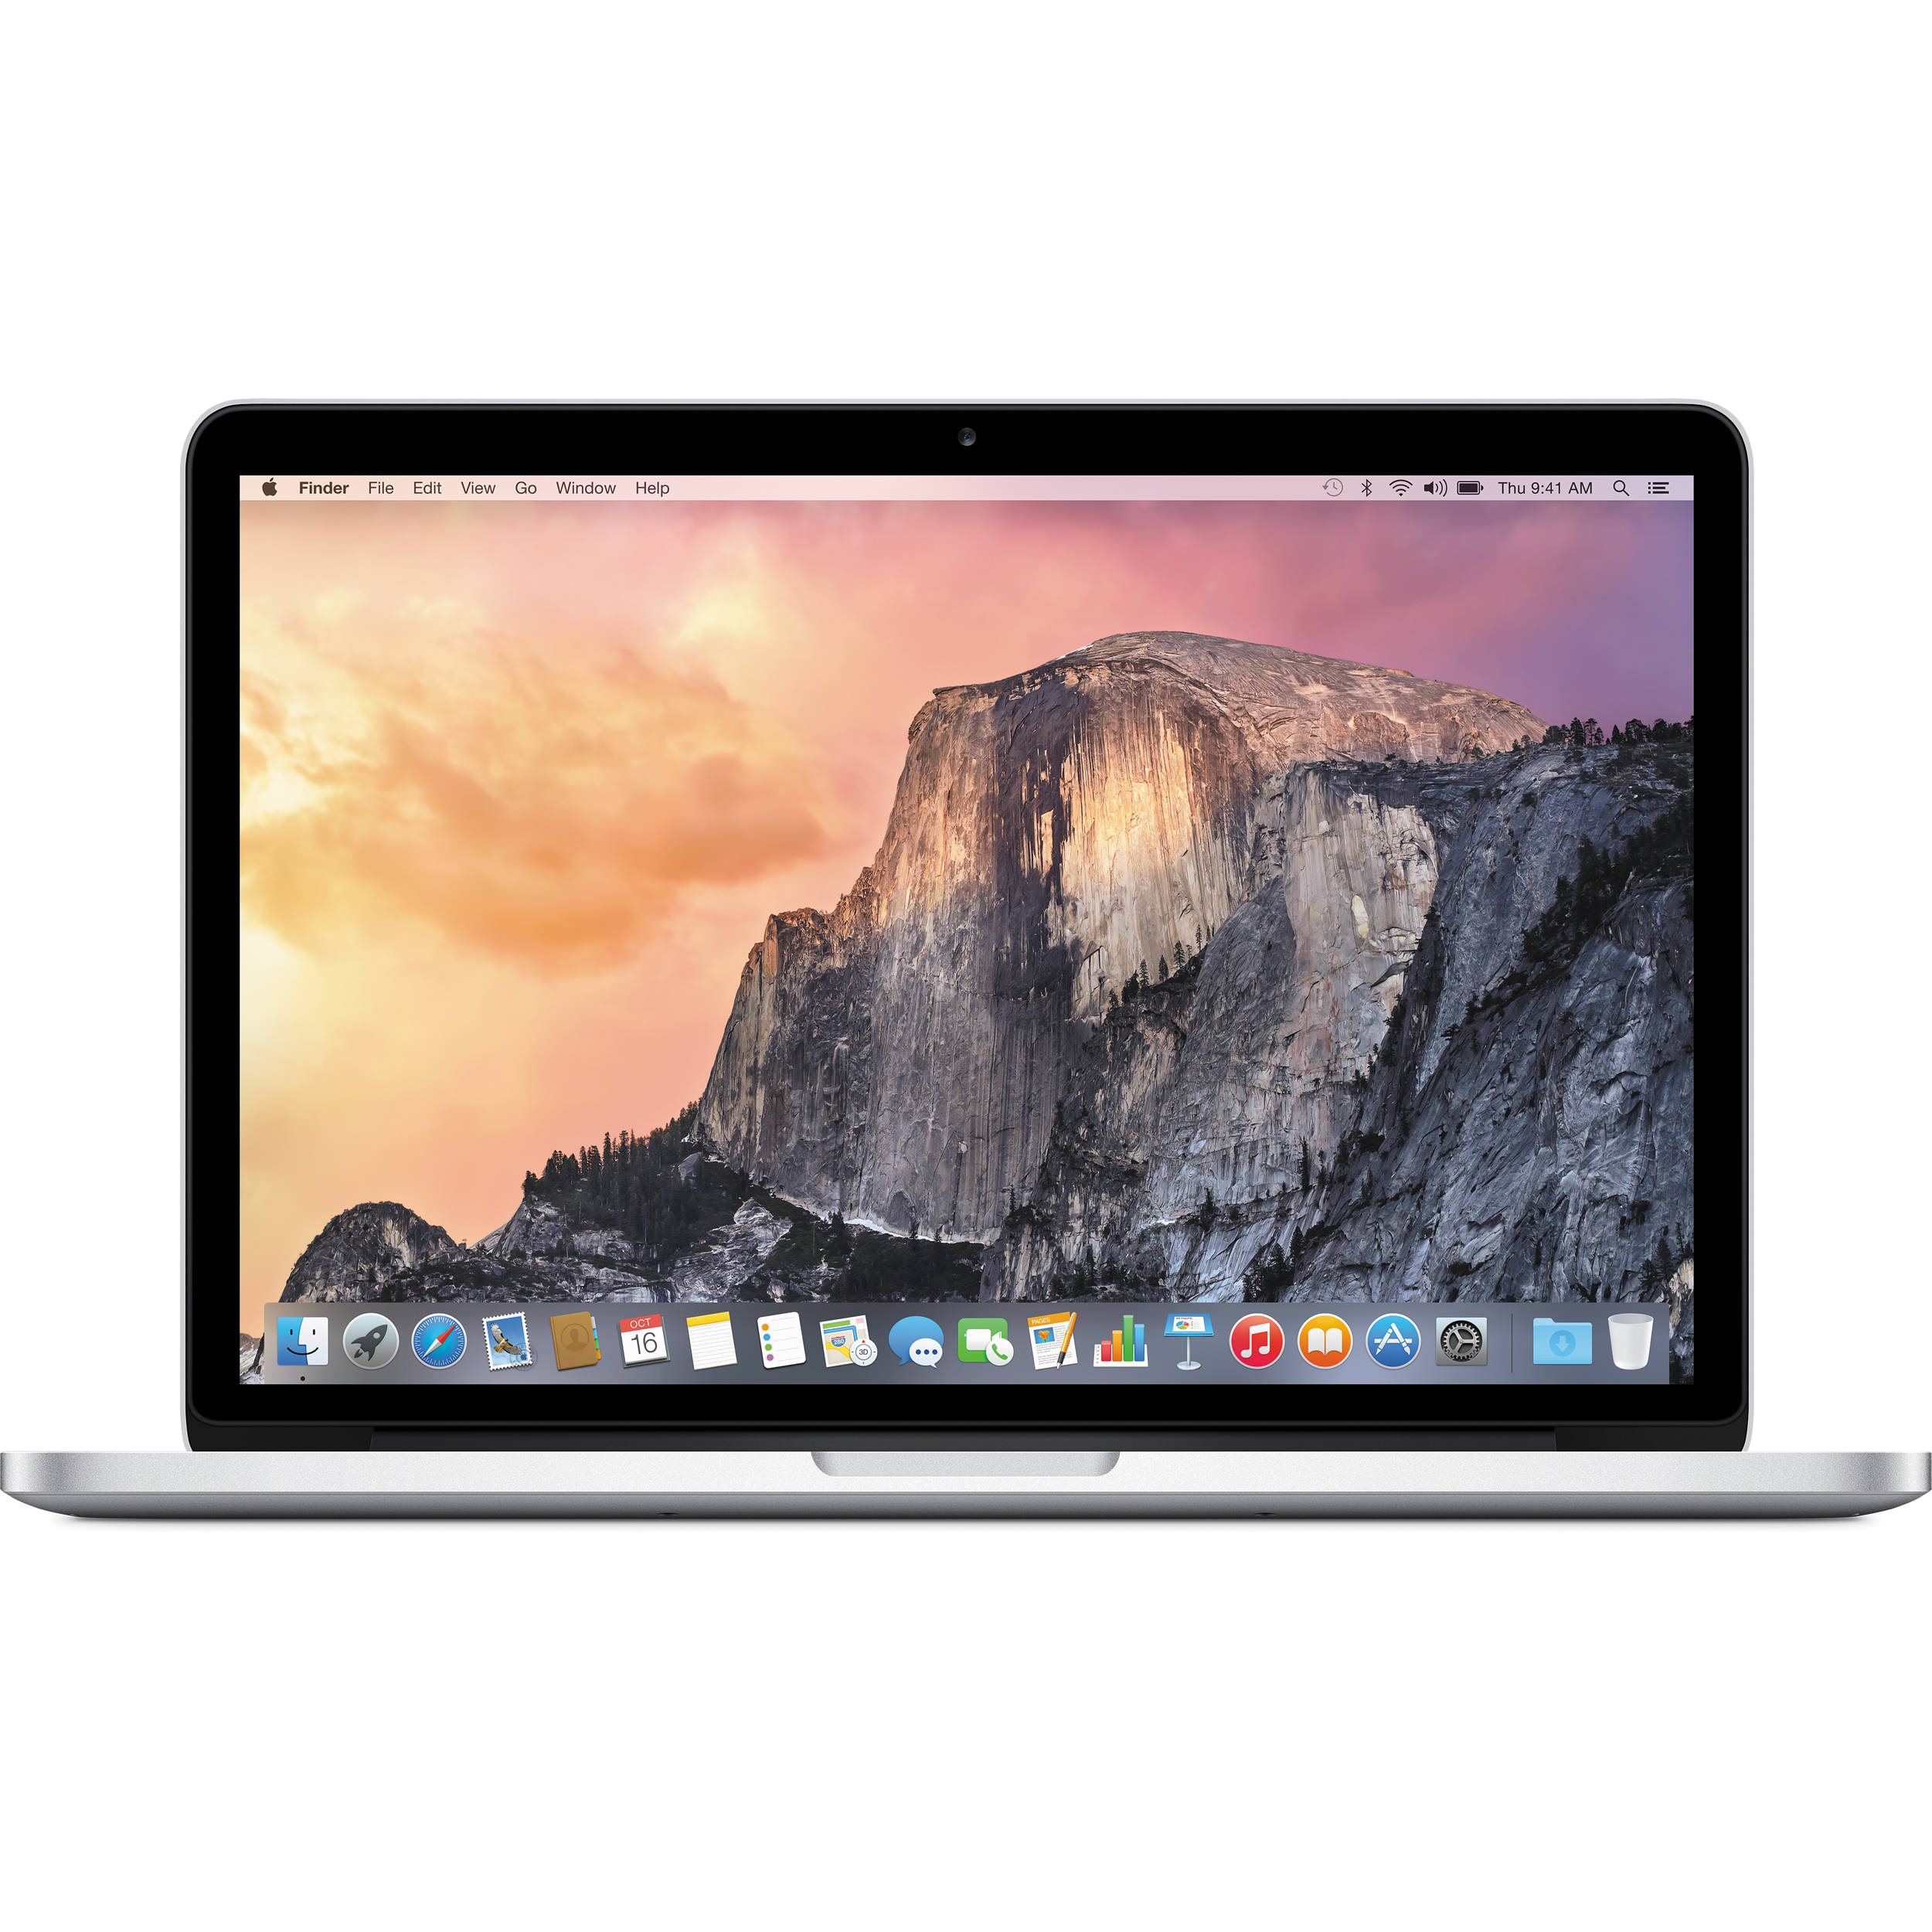 http://www.bhphotovideo.com/images/images2500x2500/apple_mf840ll_a_13_3_macbook_pro_notebook_1128848.jpg